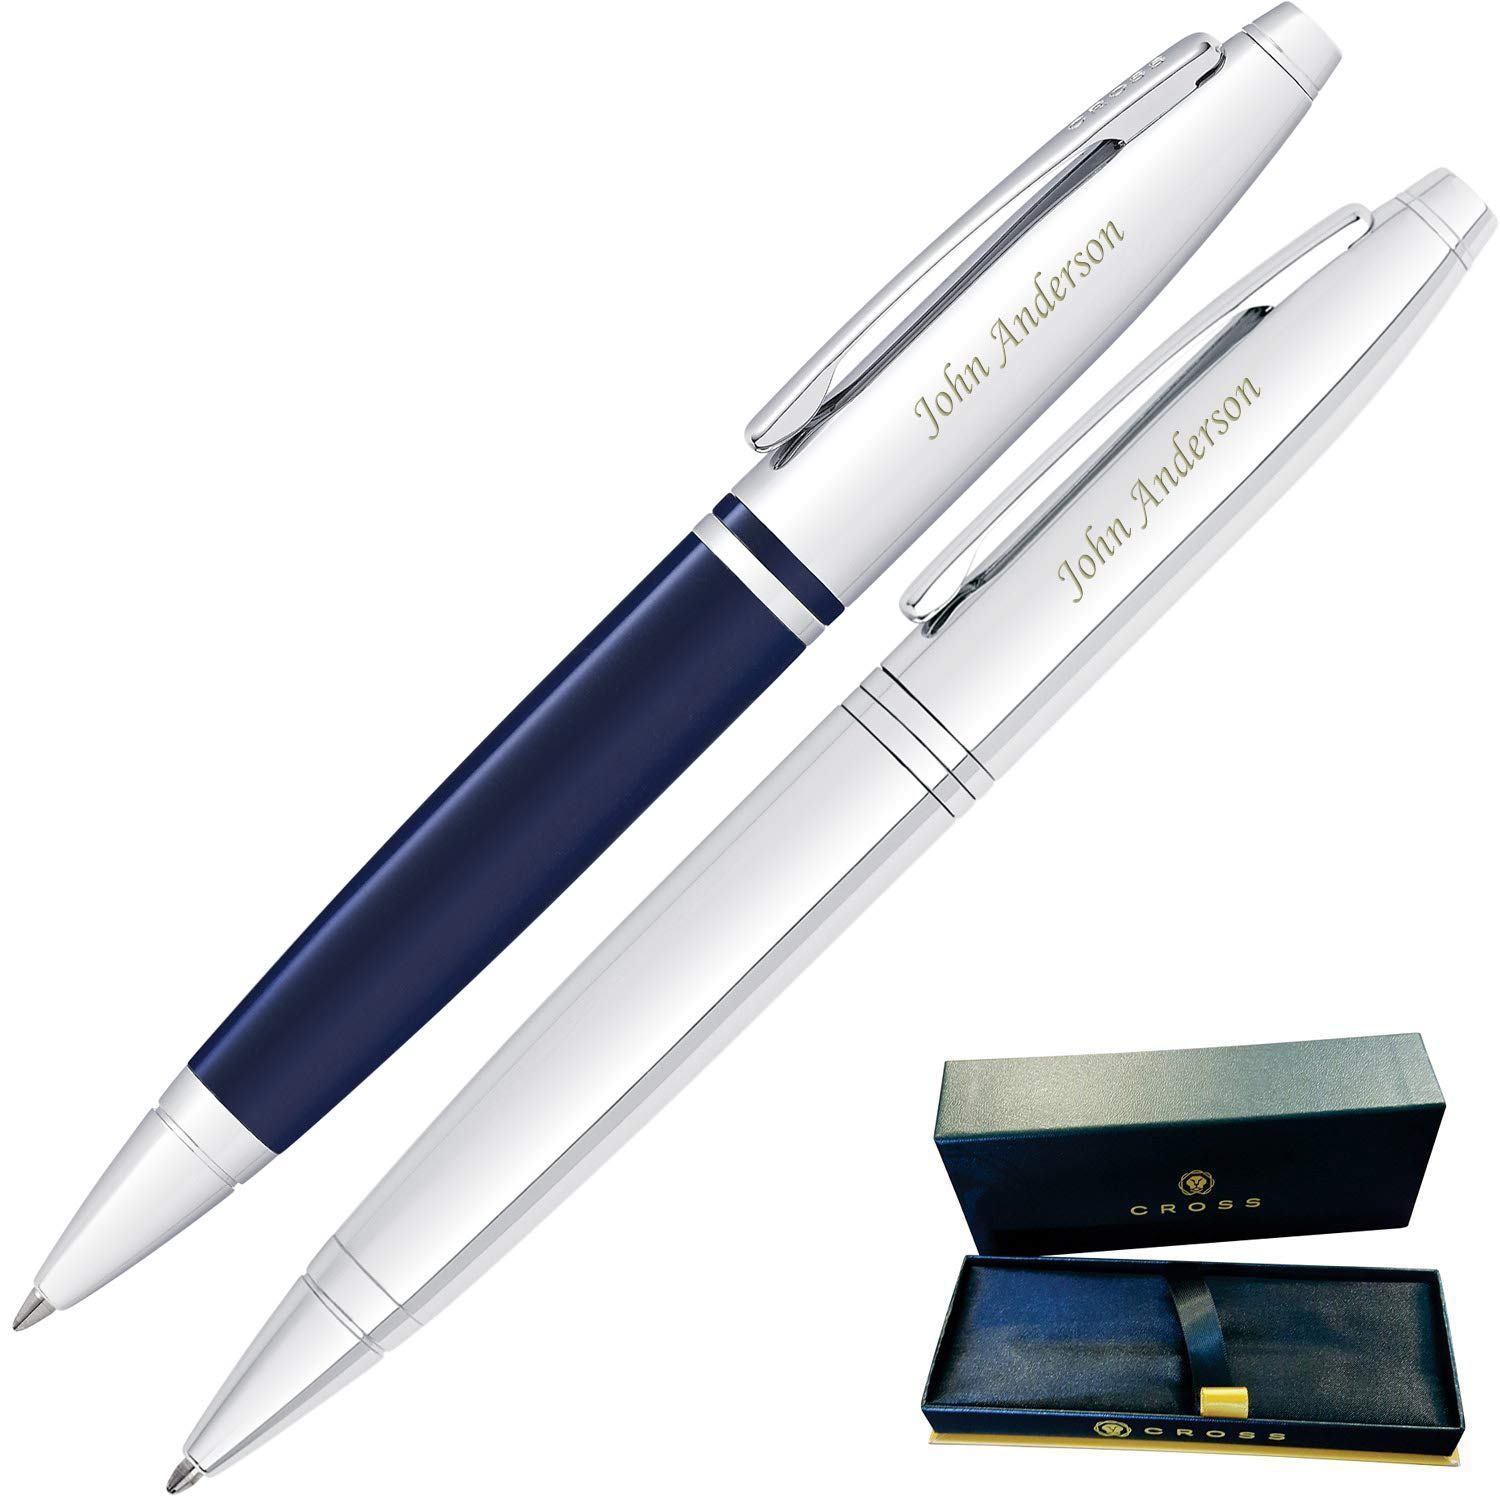 Dayspring Pens | Engraved/Personalized Cross Calais Gift Double Gift Pen Set -1 Chrome and 1 Blue Pen. Custom Engraved Fast!